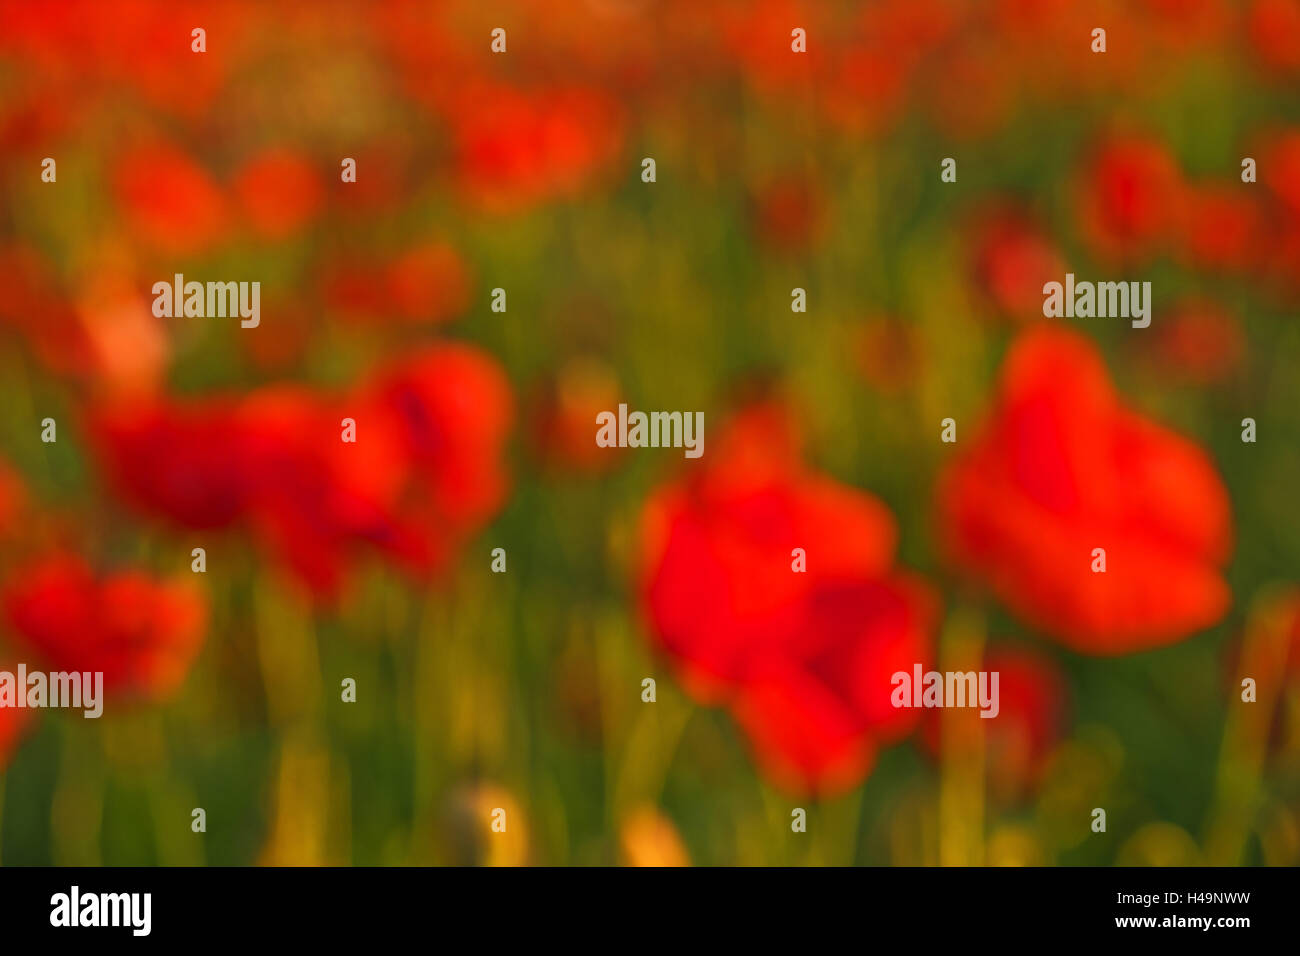 Poppy blossom, focused on blur, representation of a 'painting', - Stock Image